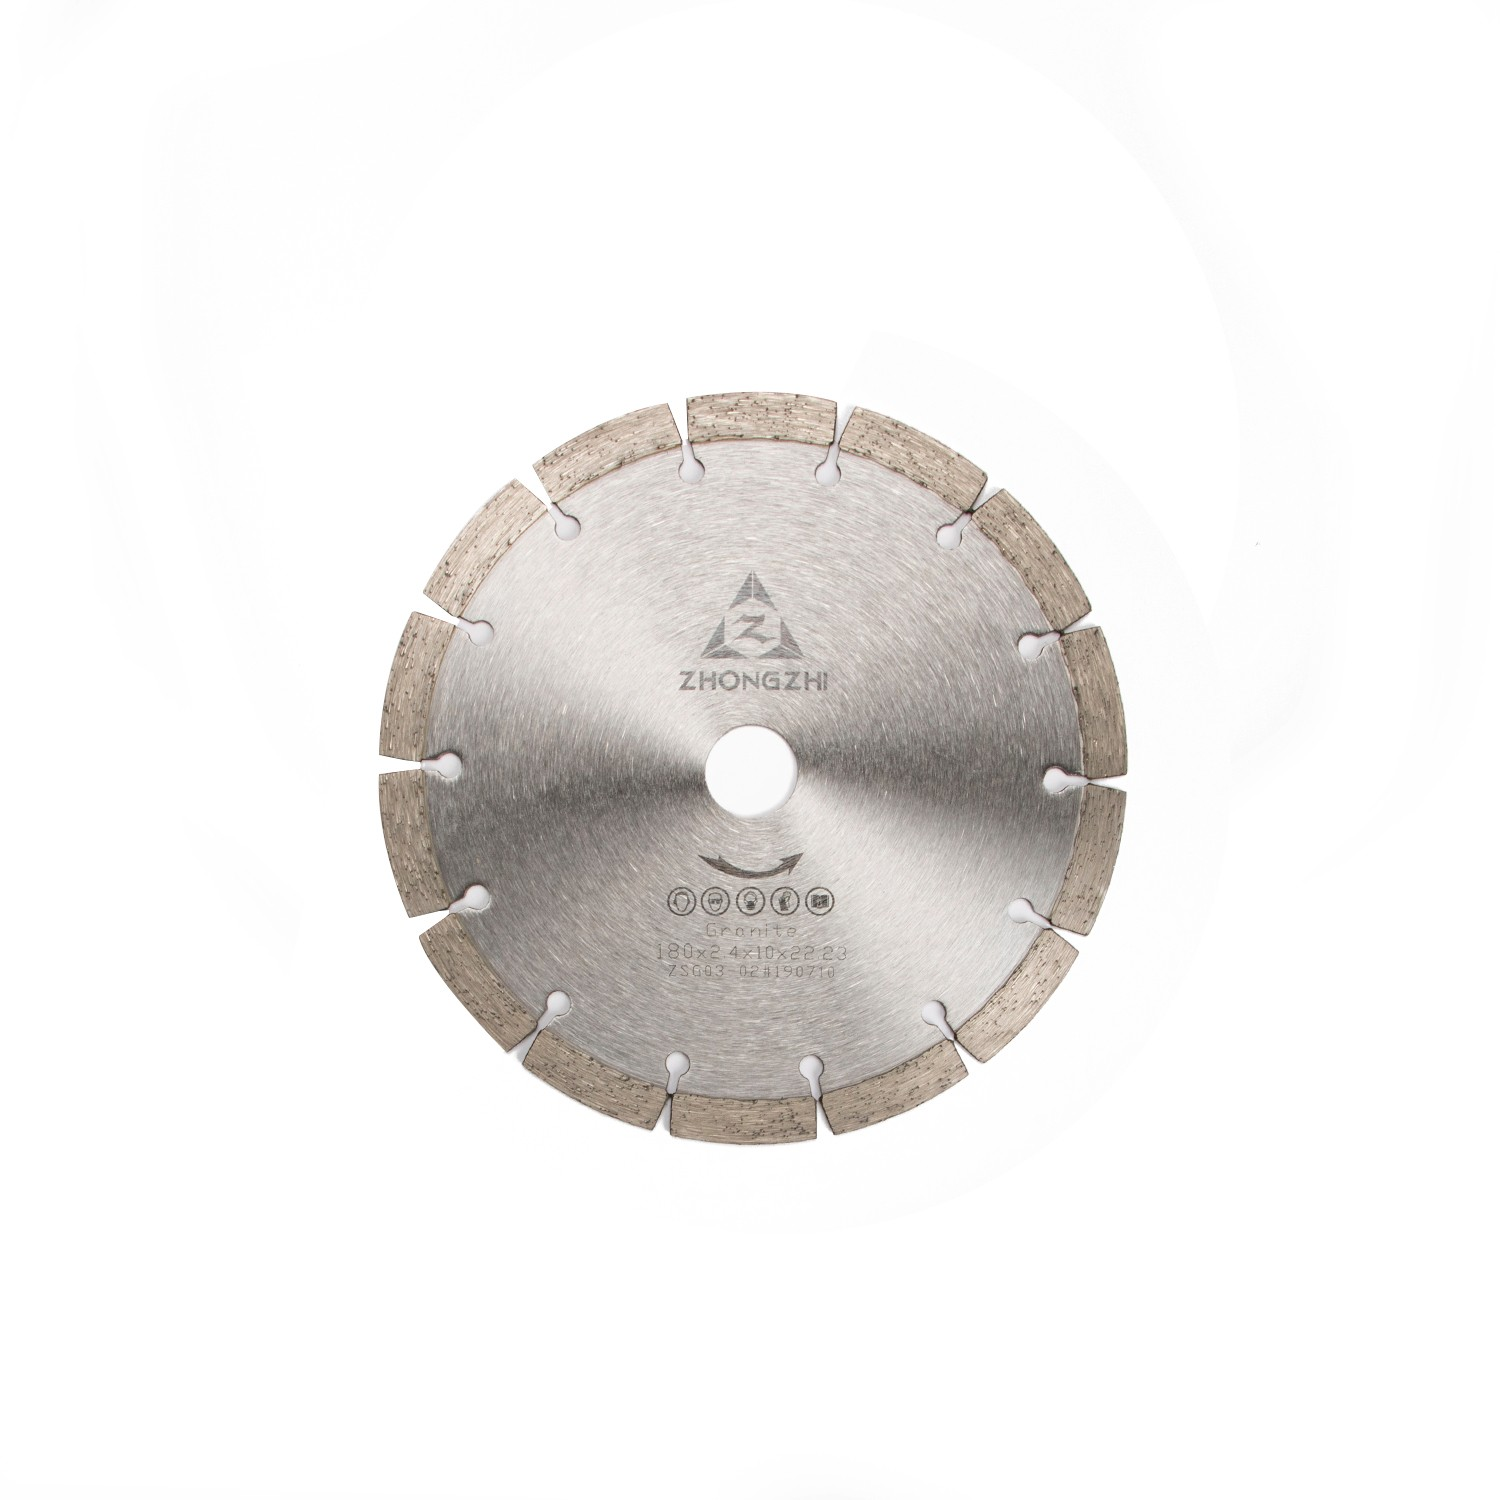 Highly sharpness of Dry Cutting and Excellent Smoothness Cutting Sintered Segmented Blade